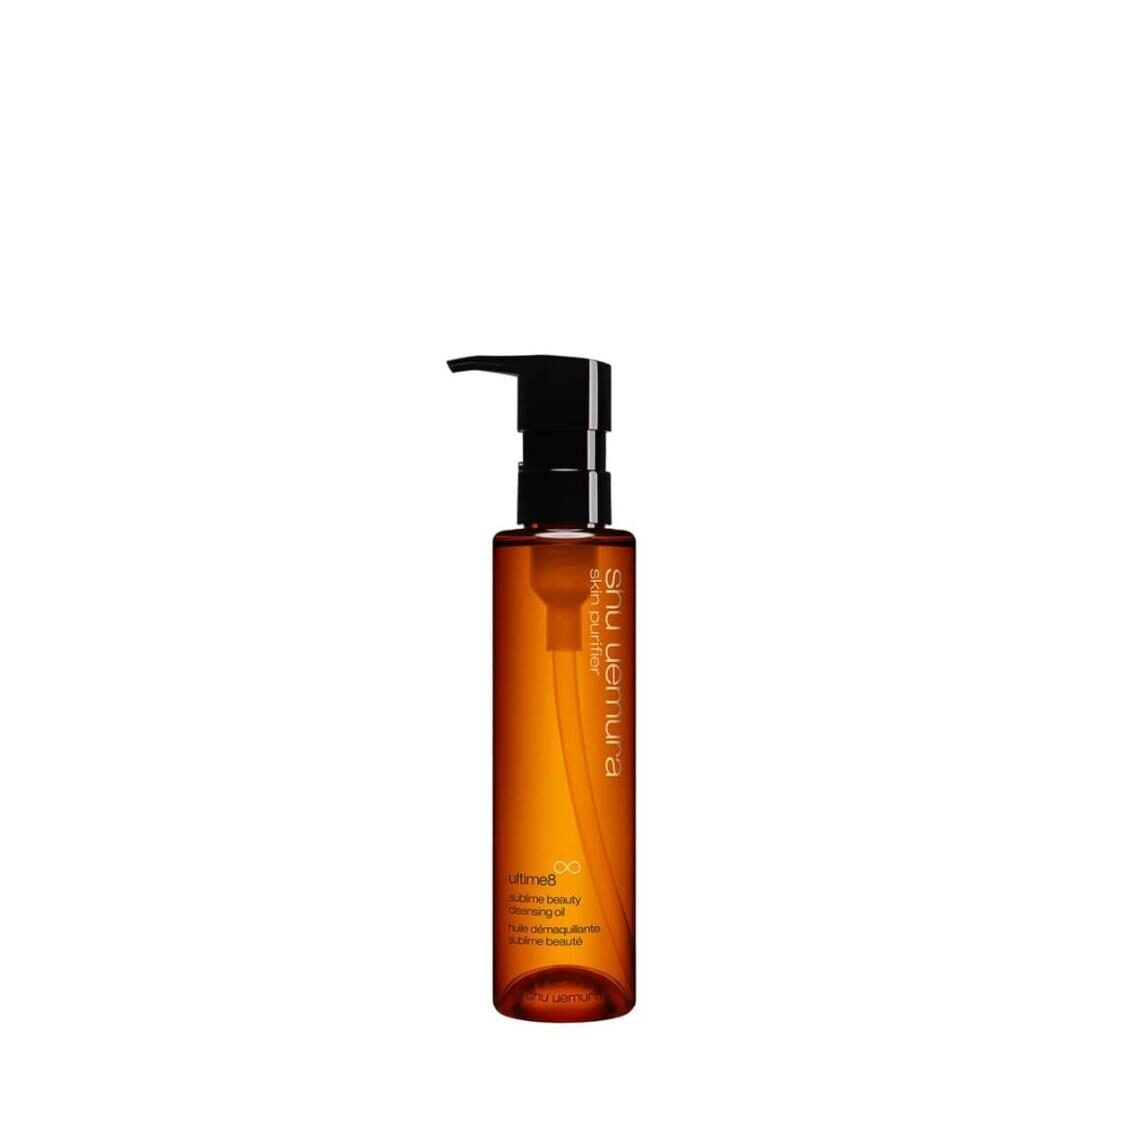 Shu Uemura Ultime8 Sublime Beauty Cleansing Oil 150ml